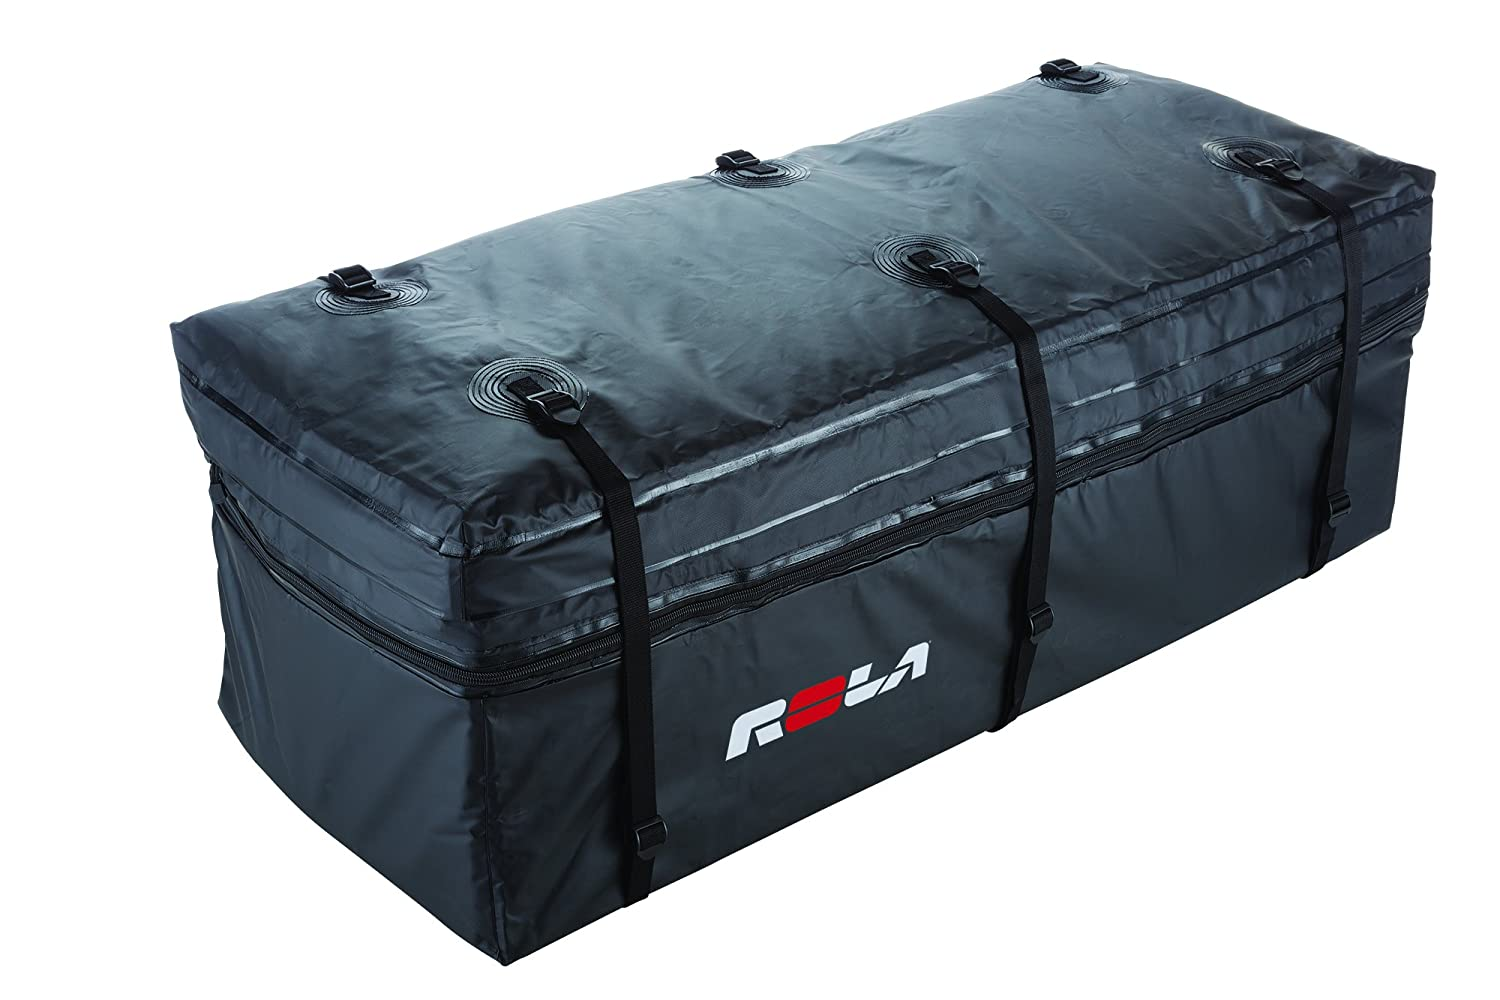 Rainproof ROLA 59102 Wallaroo Cargo Bag Expandable Hitch Tray Carrier